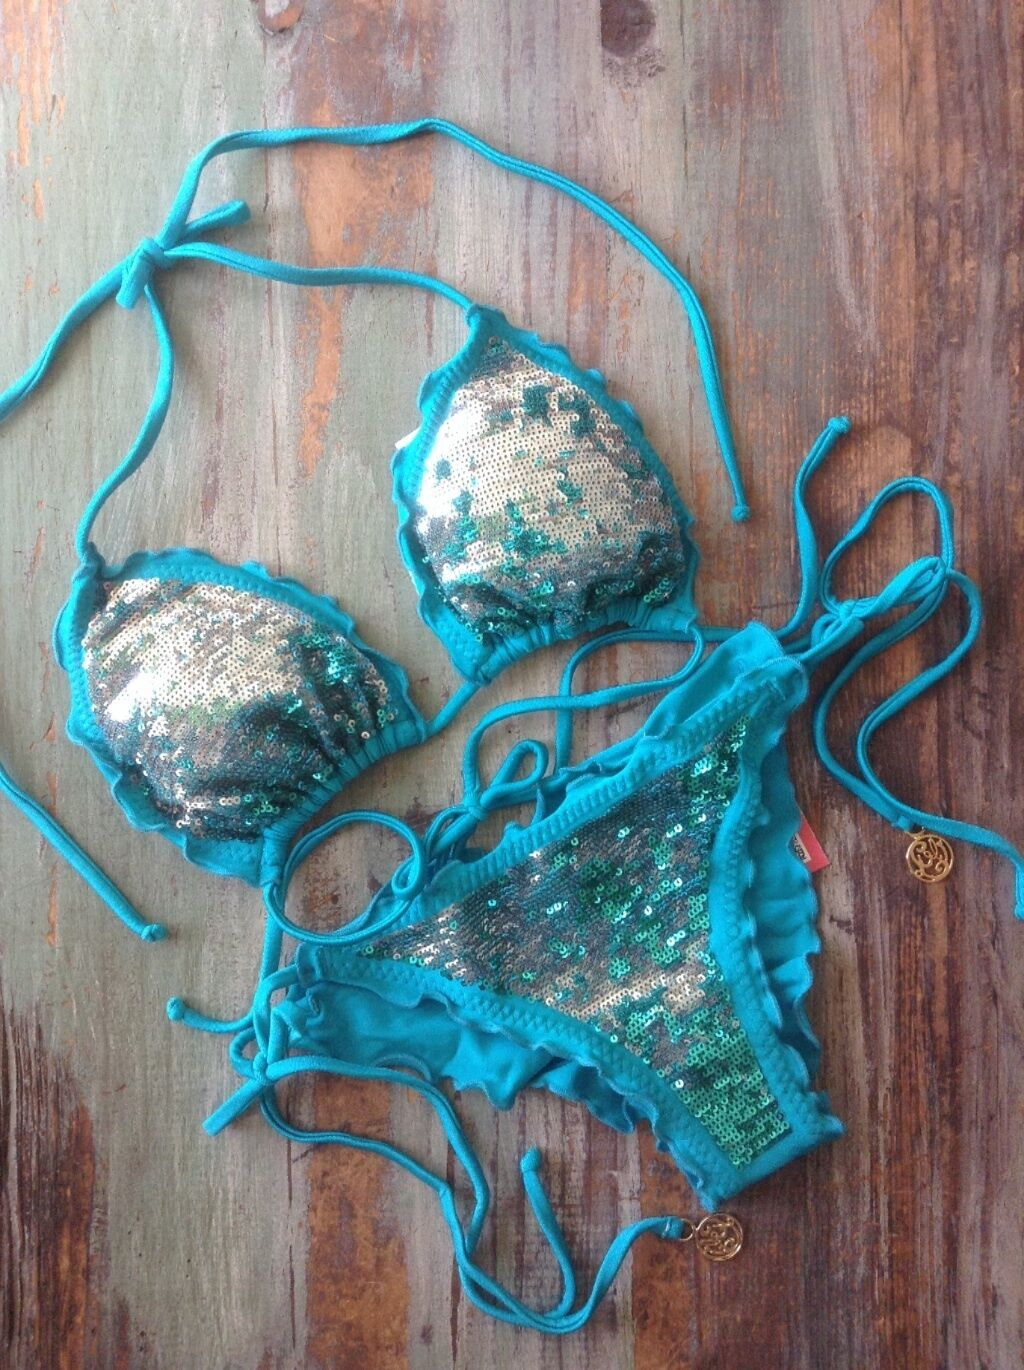 Luli Fama  XS  Wild Indulgence  sequined bikini Mermaid color   SEXY  SALE